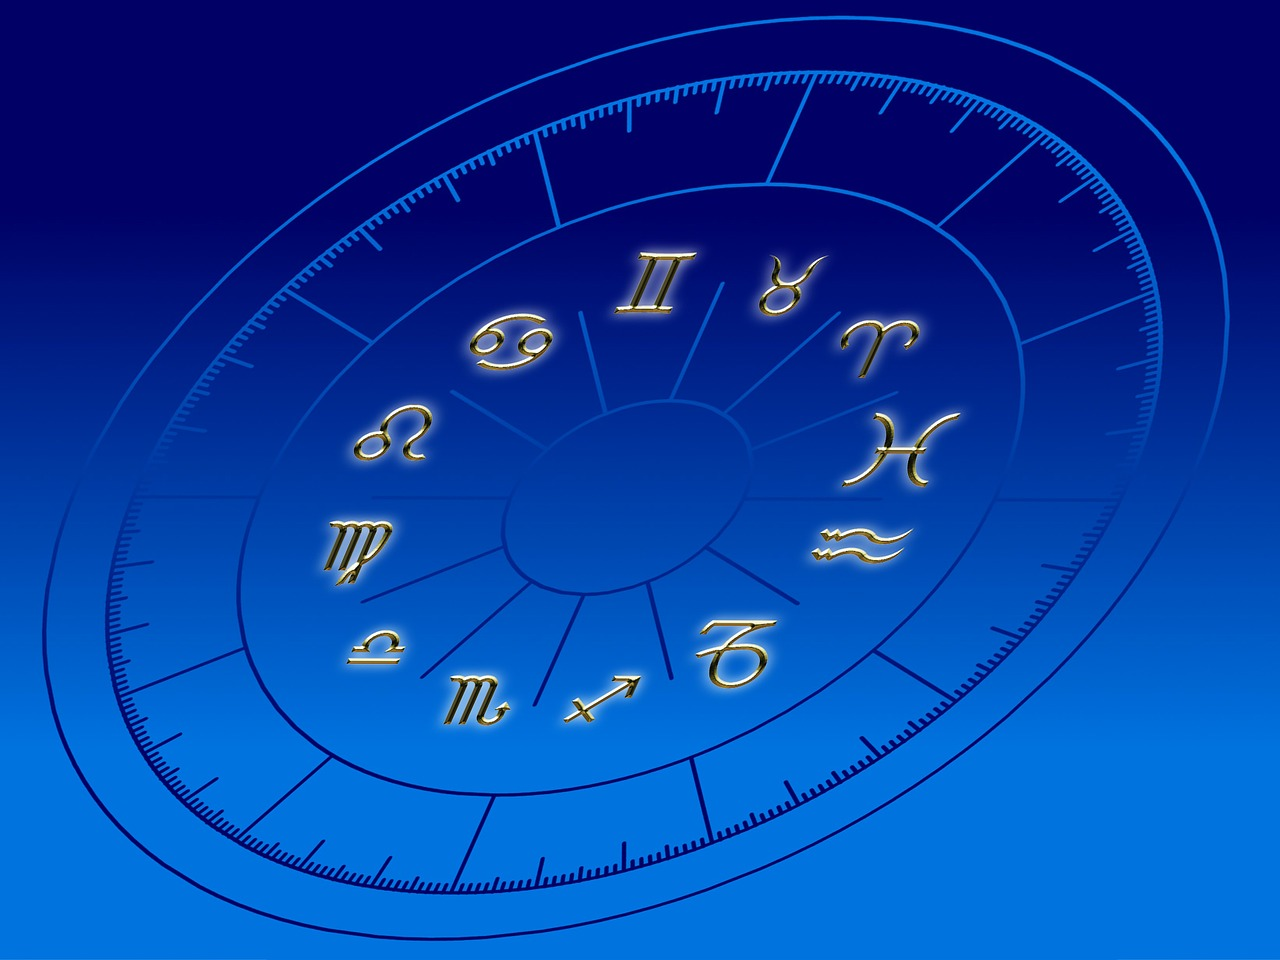 horoscope-96309_1280.jpg